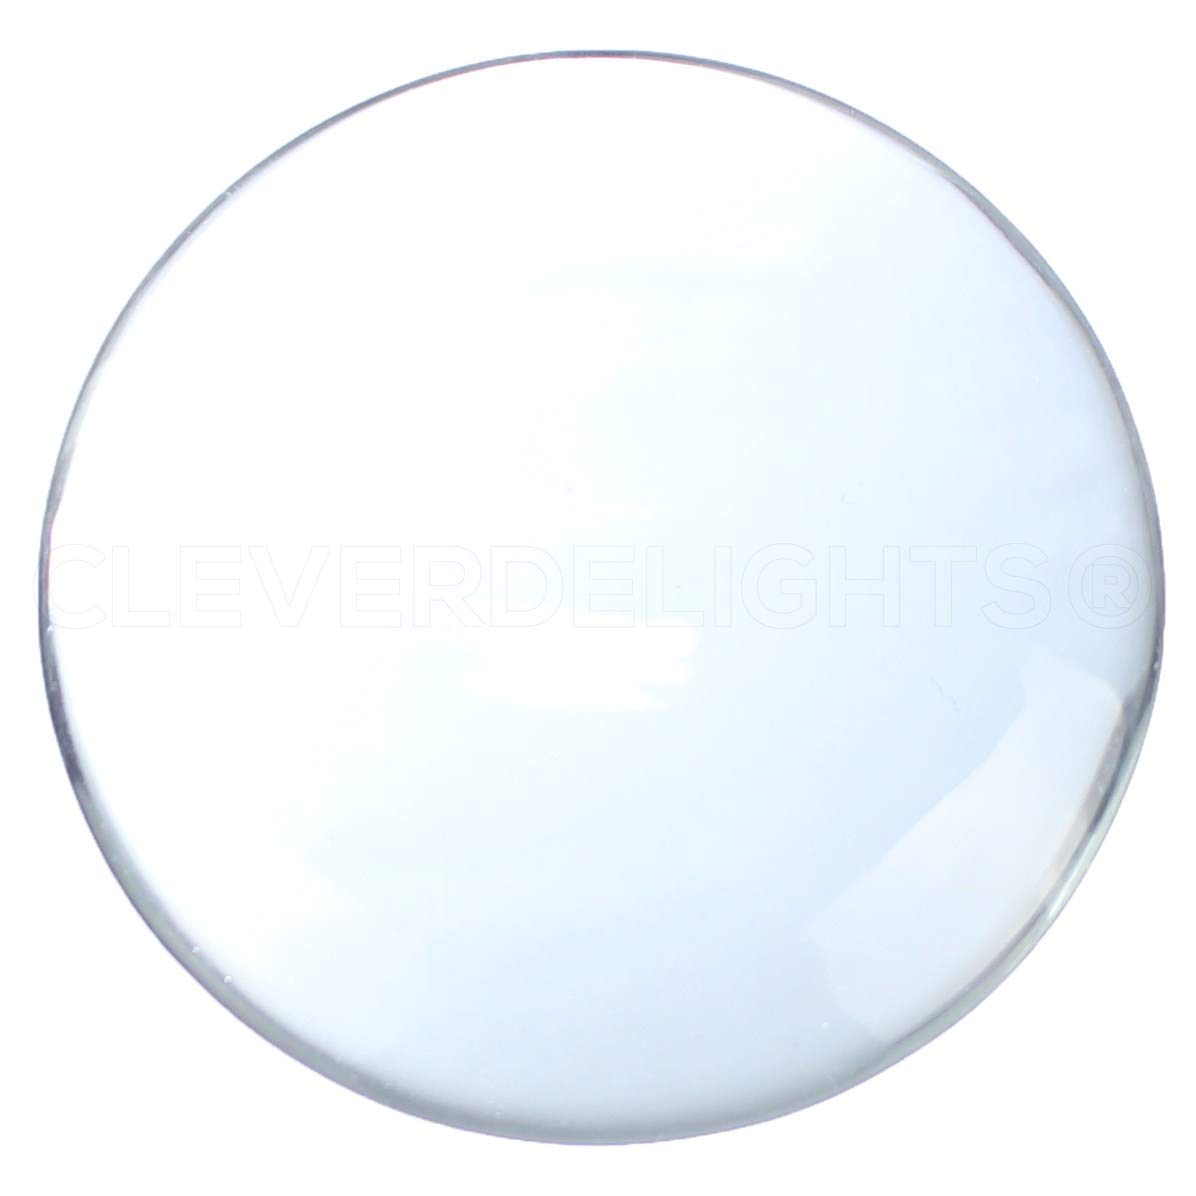 2 Pack CleverDelights 50mm Round Glass Cabochons Clear Magnifying Cabs Wafers 11mm Thick 2 Inch